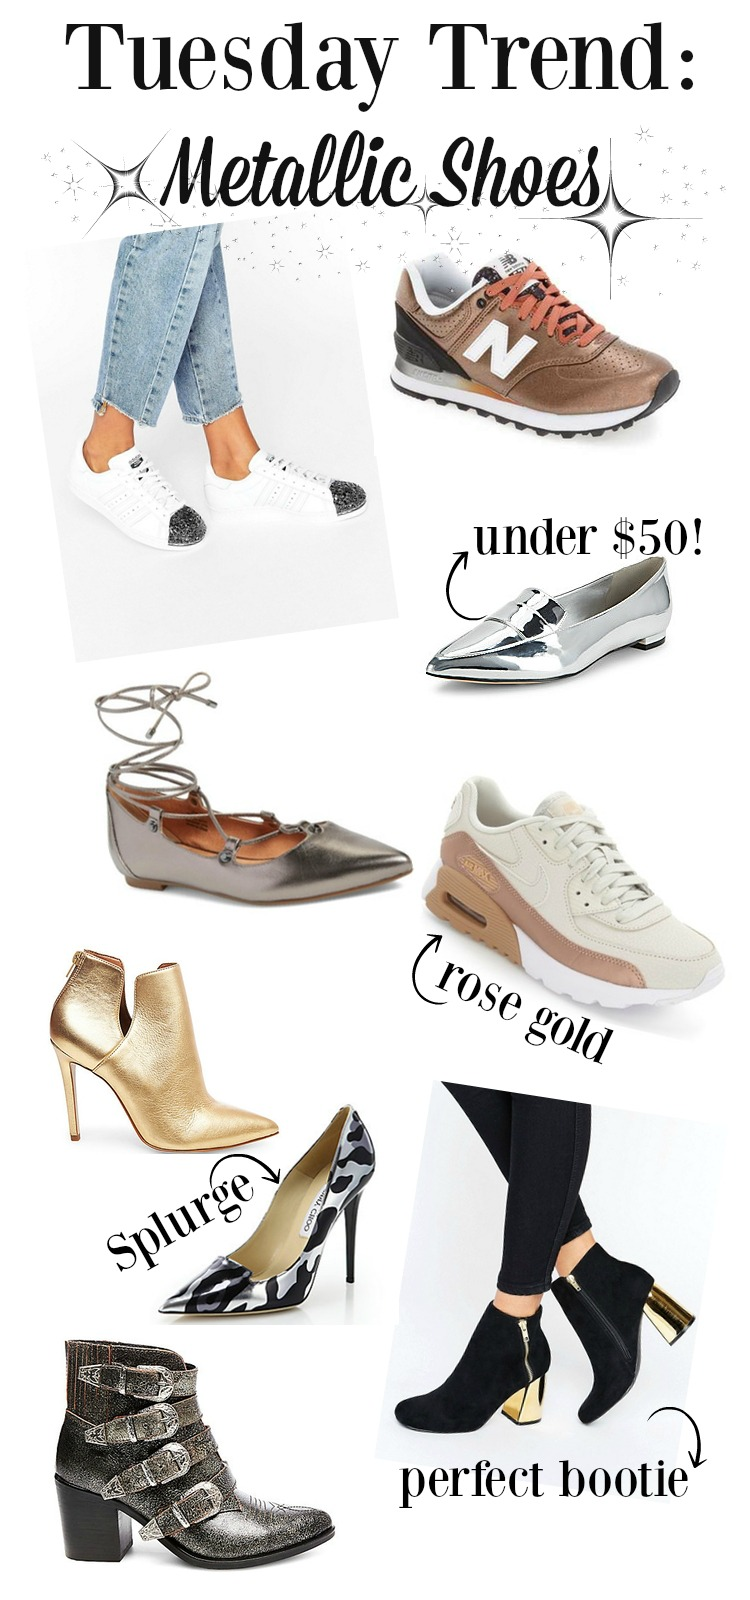 Fall 2016 hottest trend: Metallic Shoes